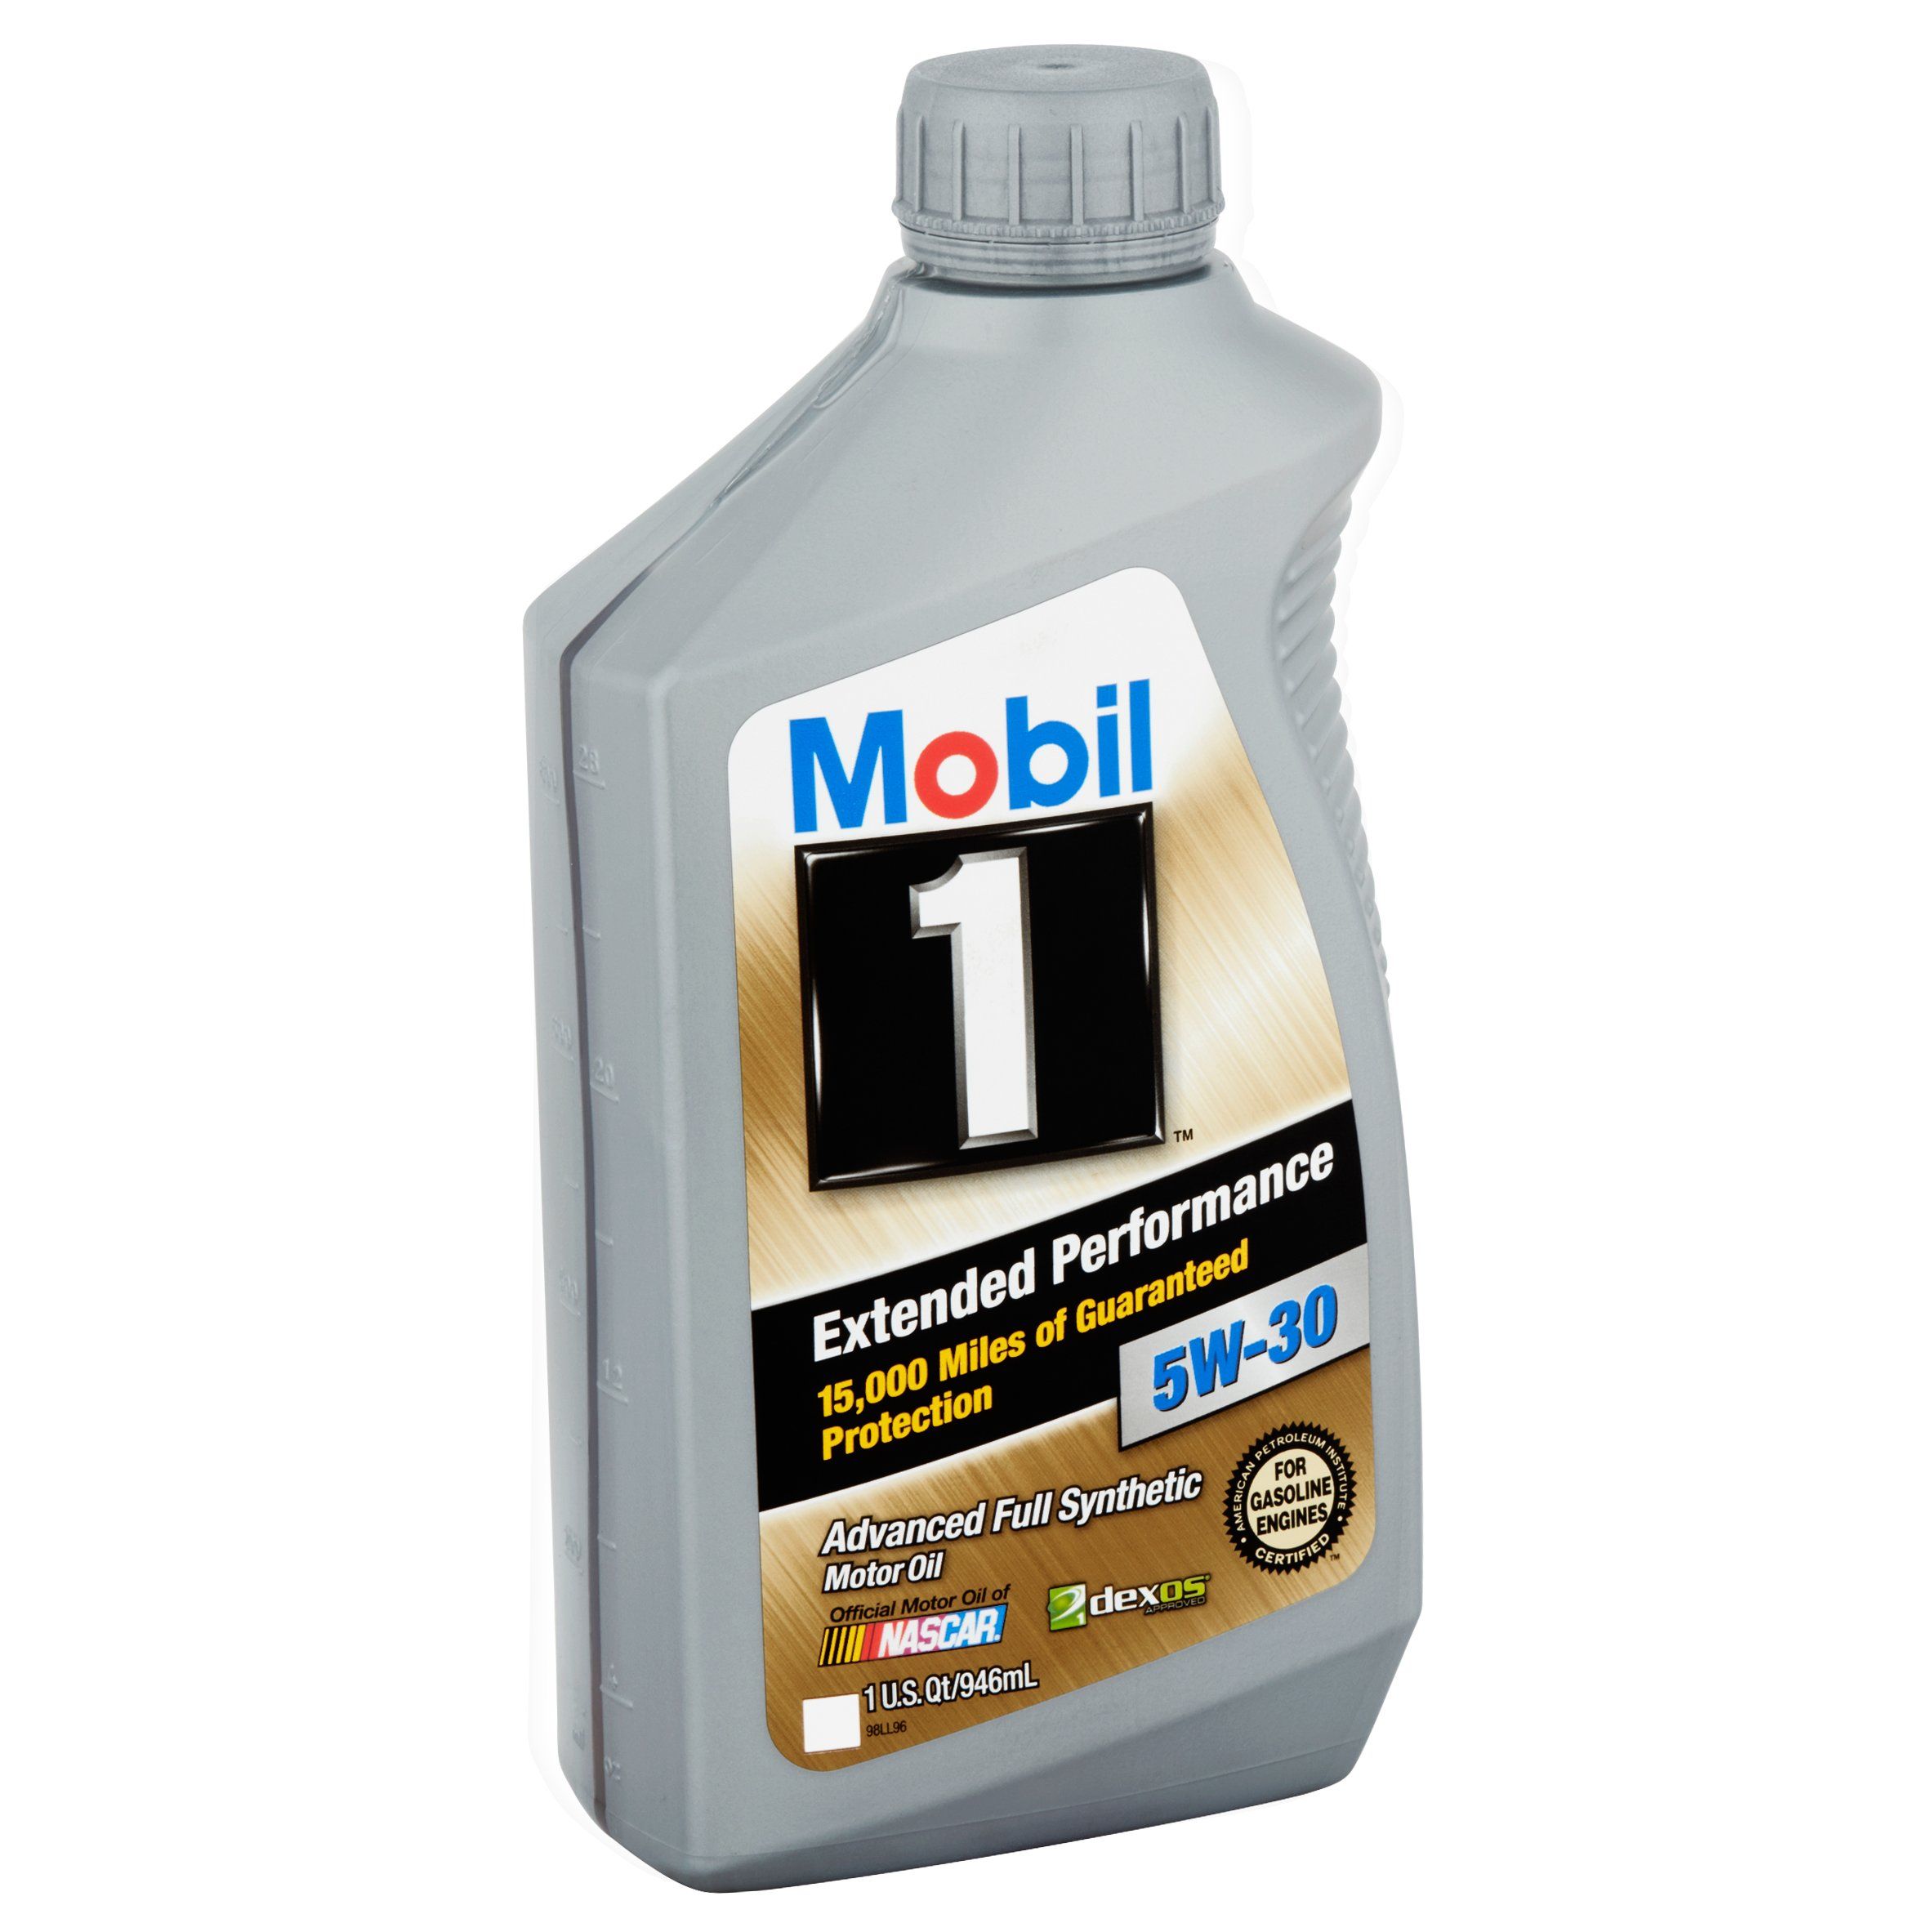 Mobil 1 5W-30 Extended Performance Full Synthetic Motor Oil, 1 qt.